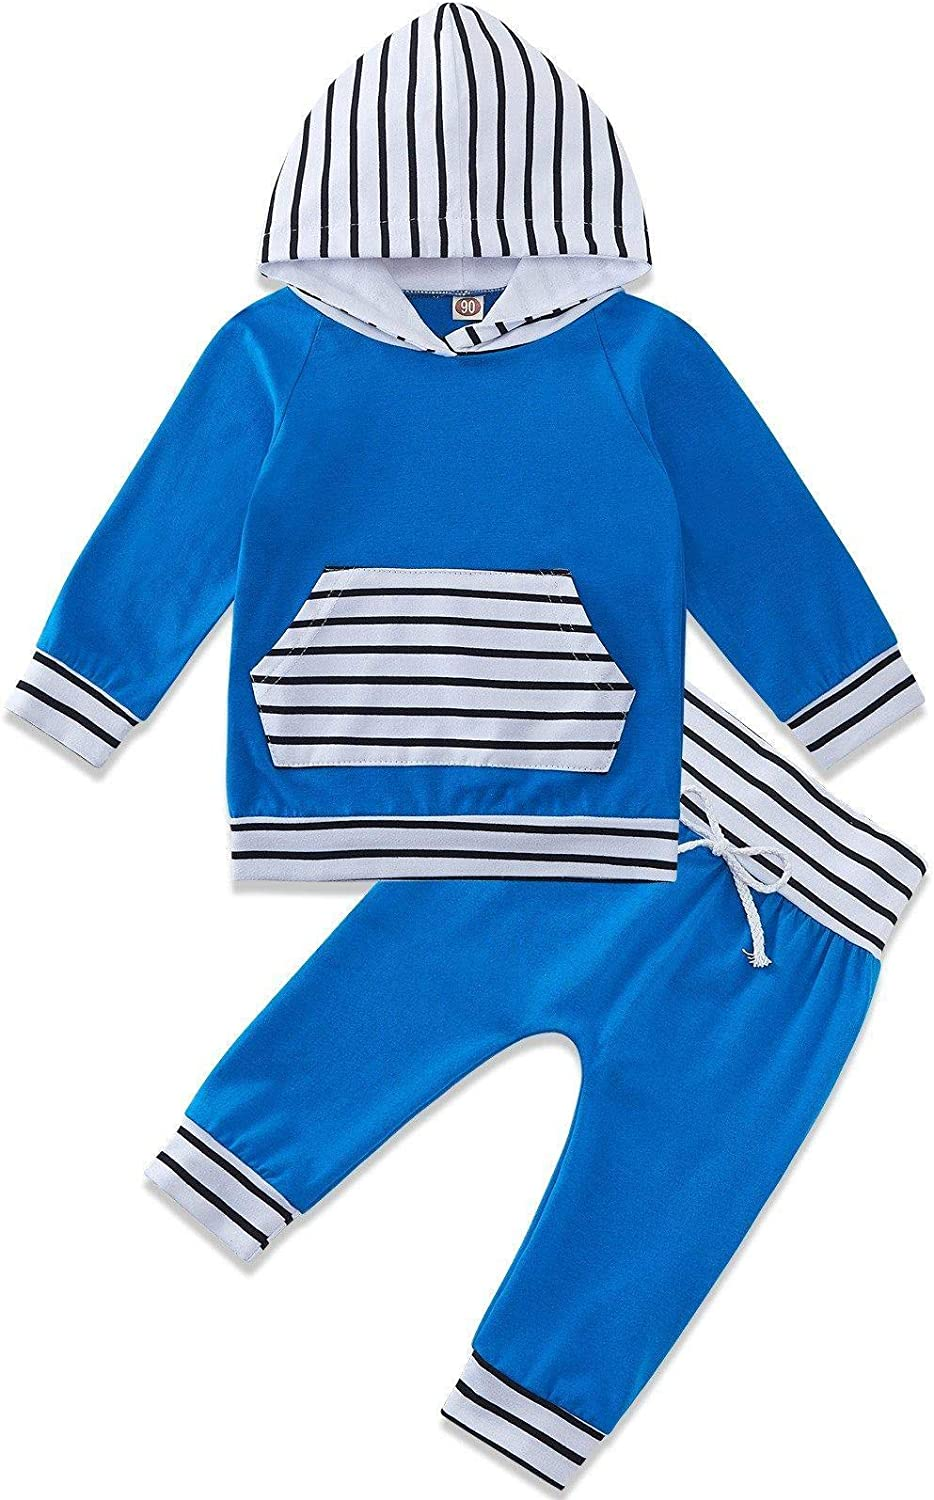 Baby Boys Girls Outfits Set Long Sleeve Hoodie Tops Pants 2pcs Sweatsuit 0-24 Months